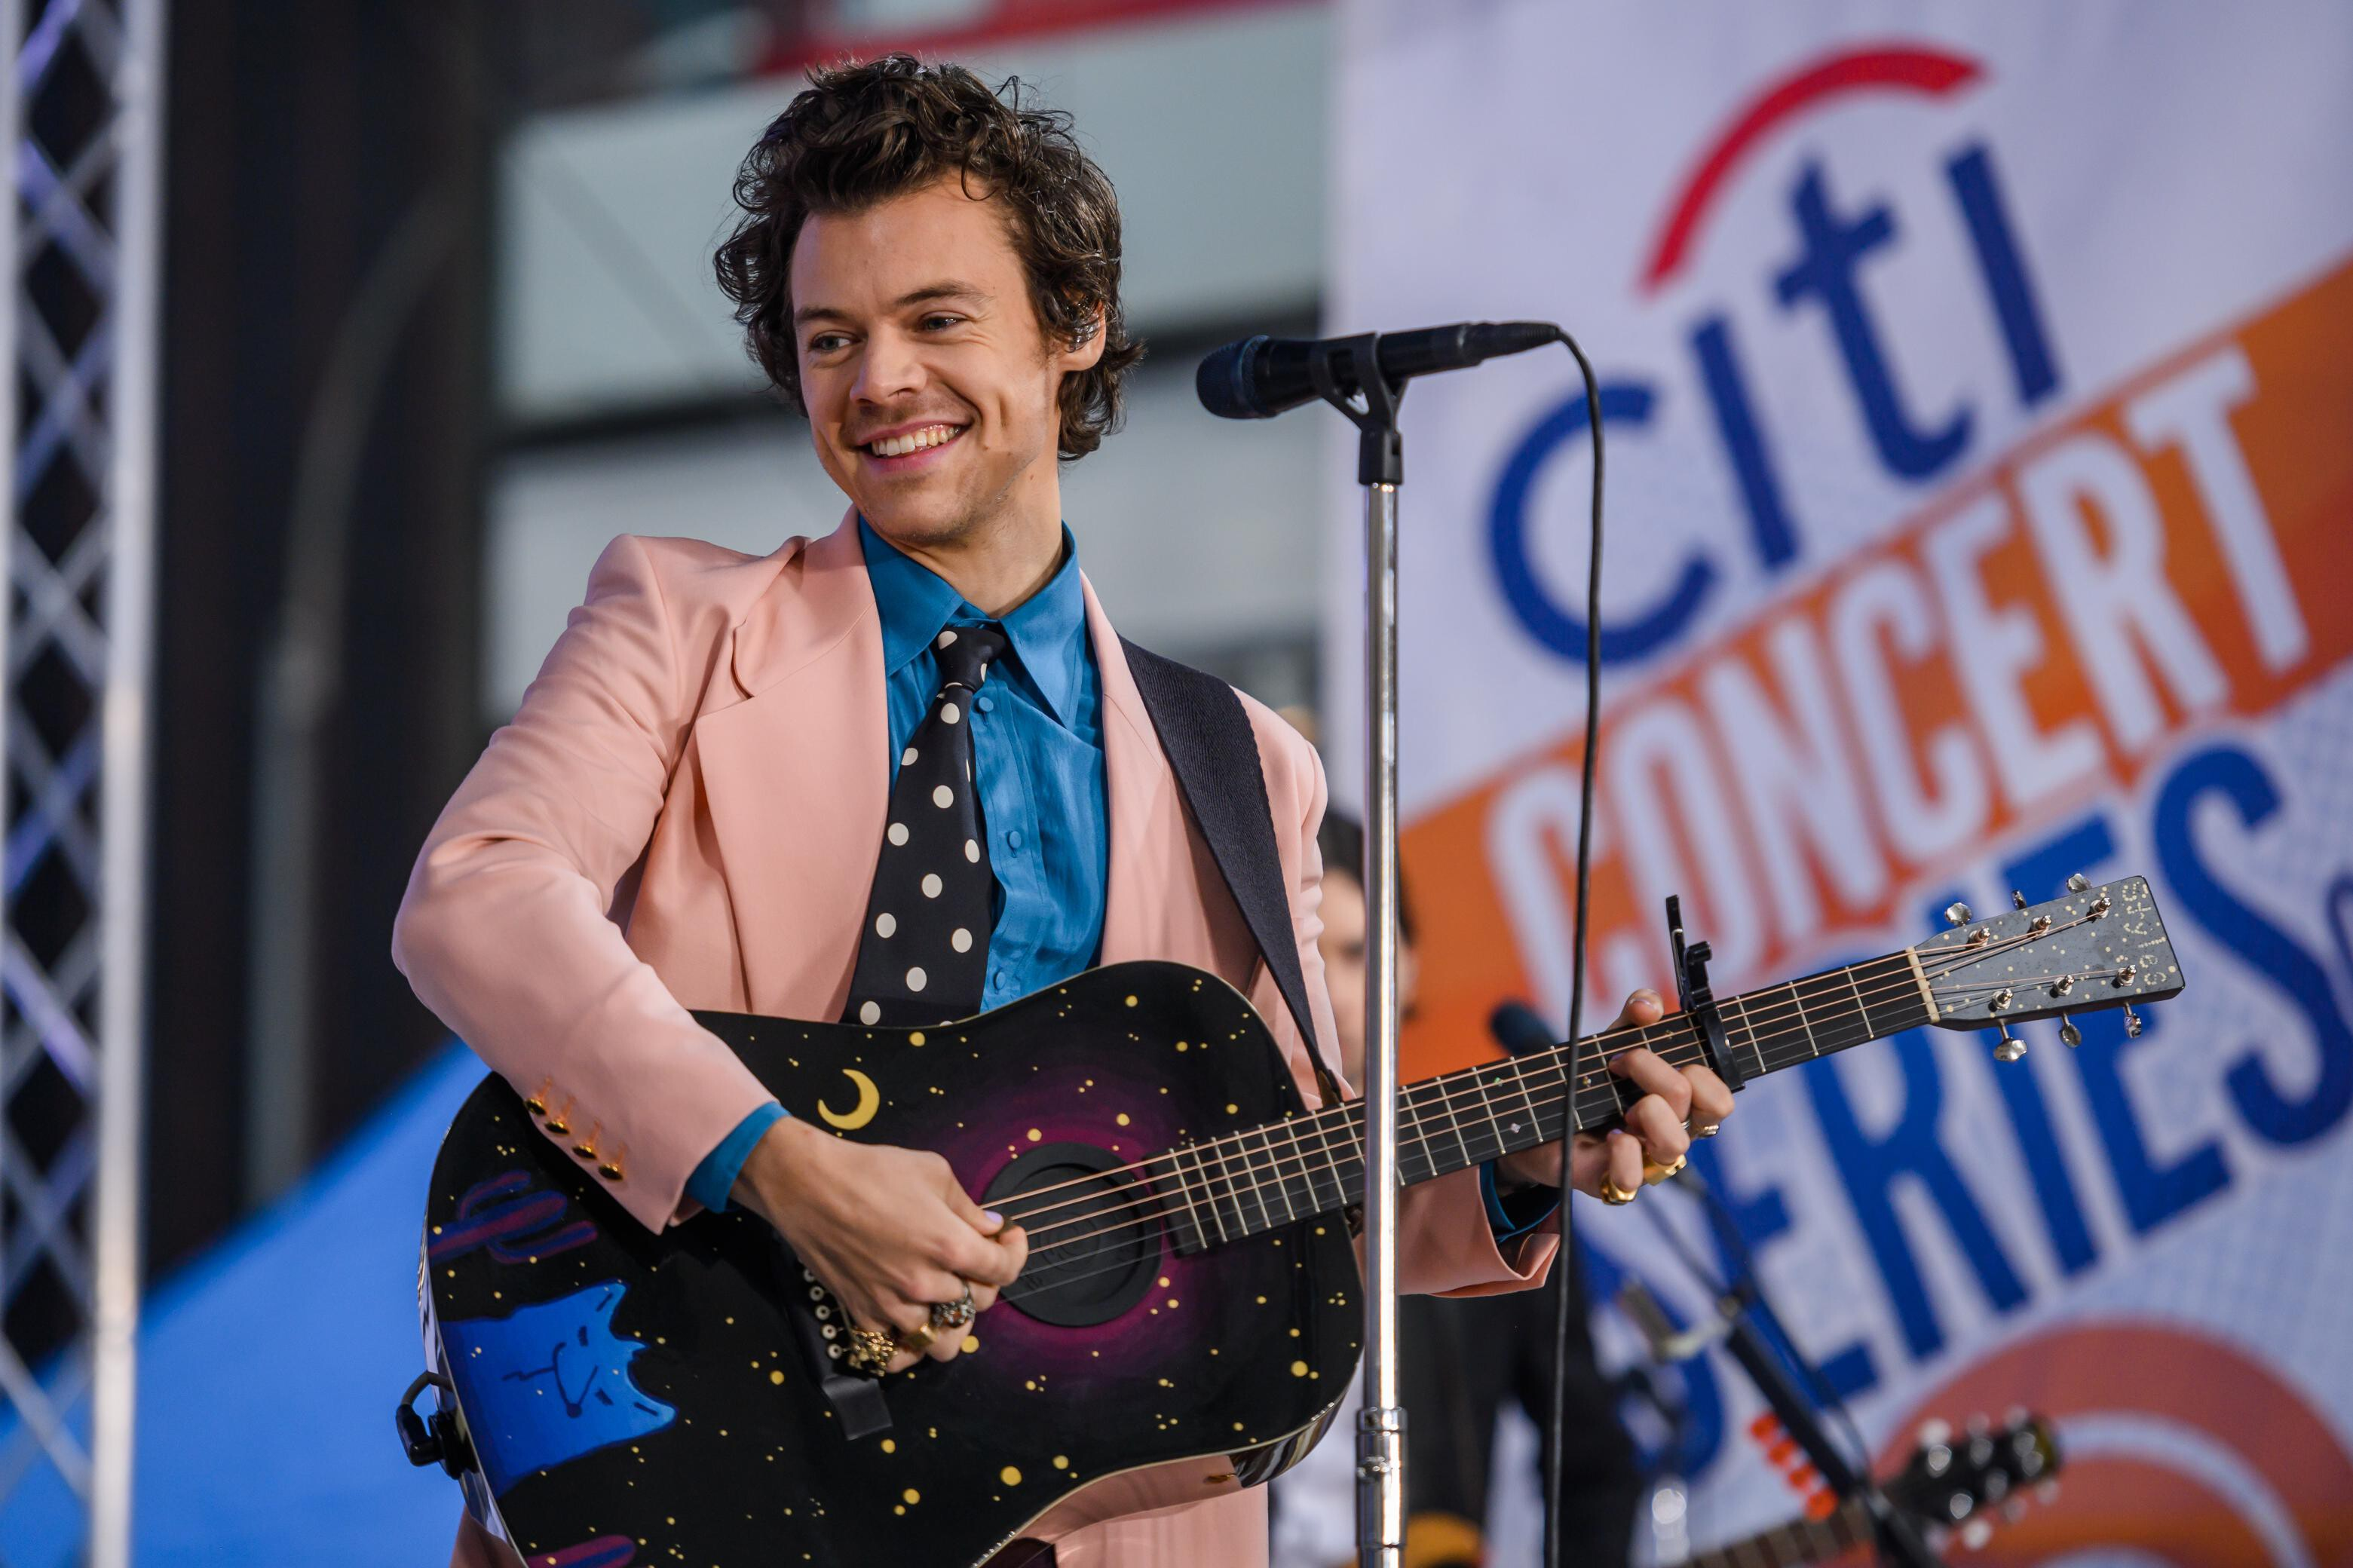 Harry Styles reveals NSFW meaning of 'Watermelon Sugar'